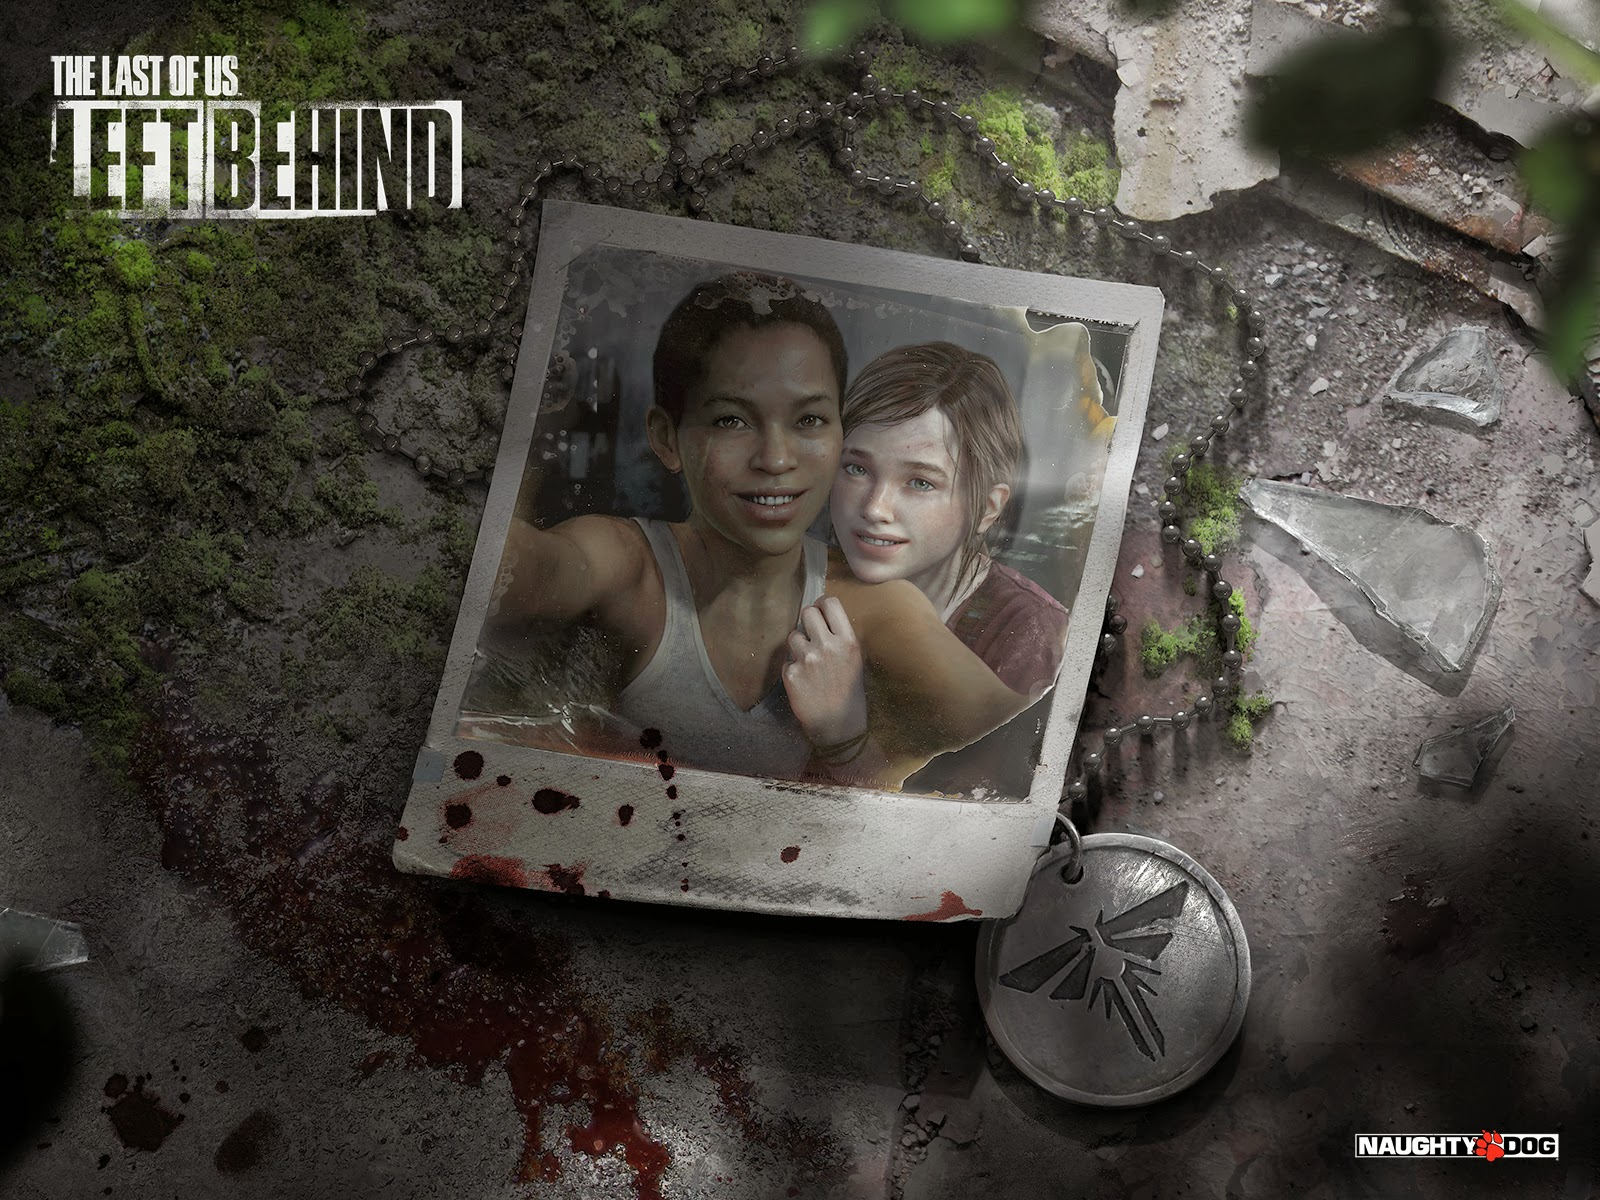 The Last of Us: Left Behind - First Look - Zombie of the Week